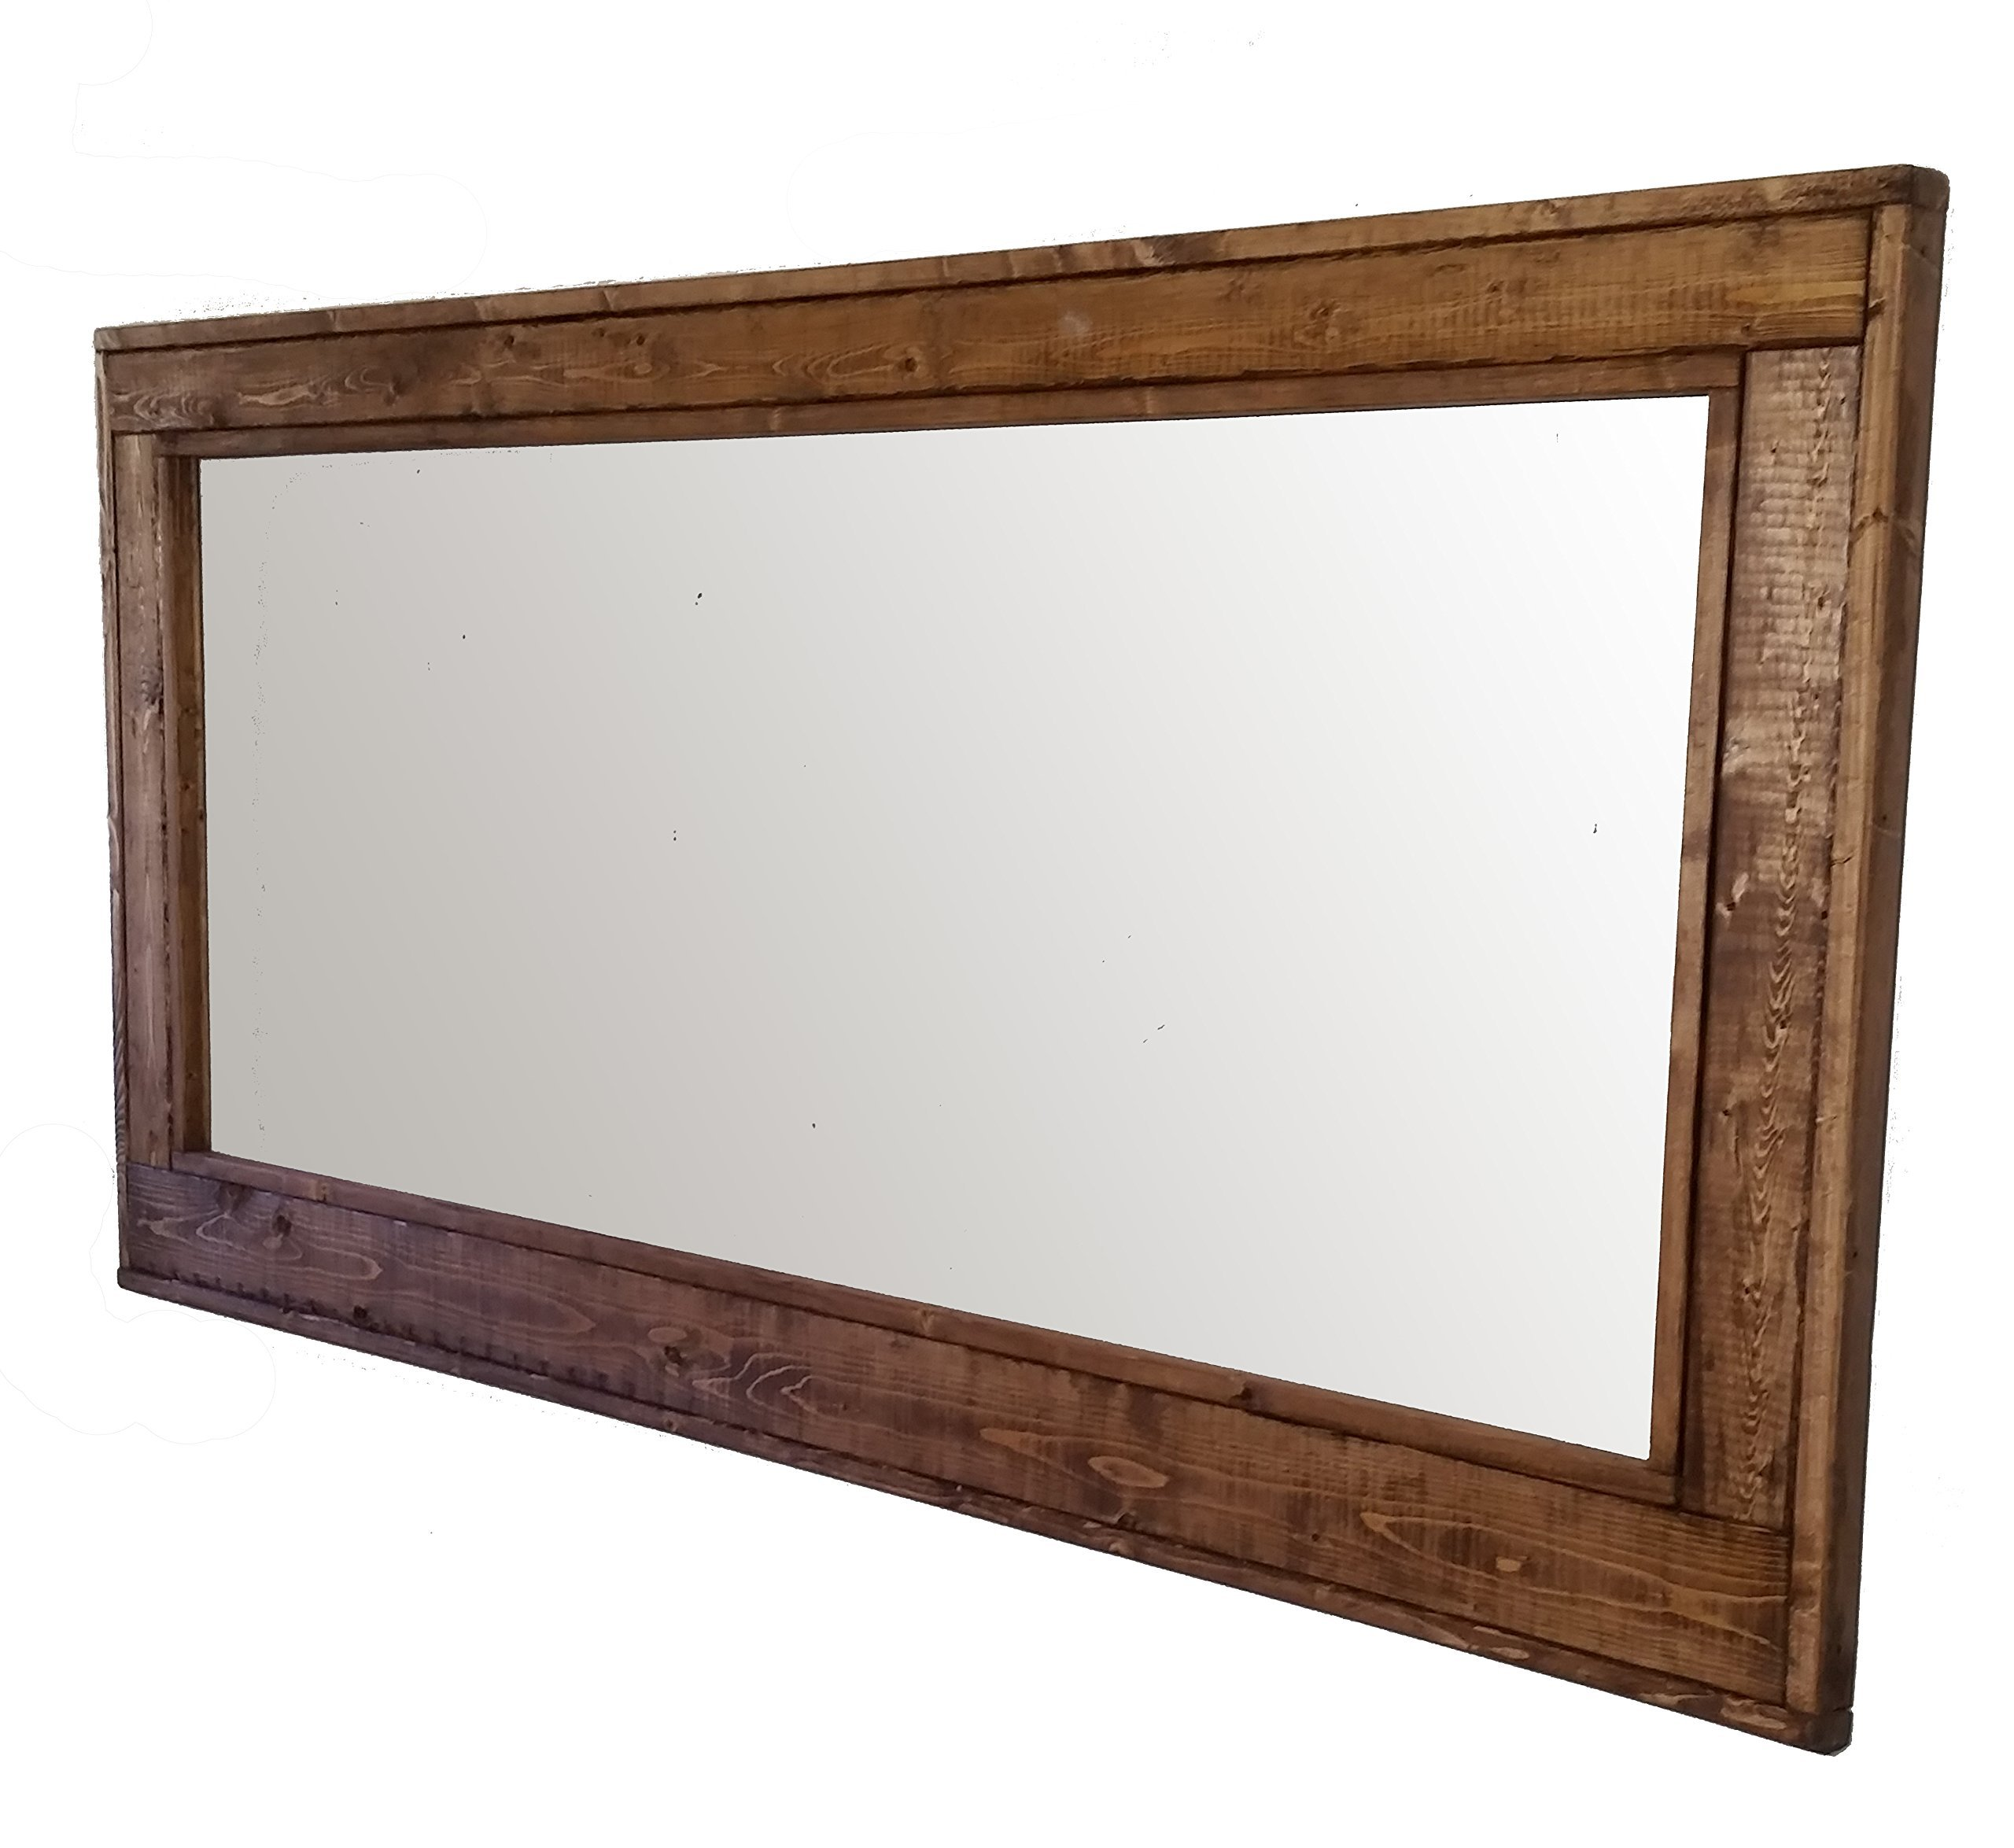 60 x 30 Herringbone Double Vanity Mirror Special Walnut Stain Reclaimed Wood Framed Mirror - Large Wall Mirror - Rustic Modern Home - Home Decor - Mirror - Woodwork by Renewed Decor